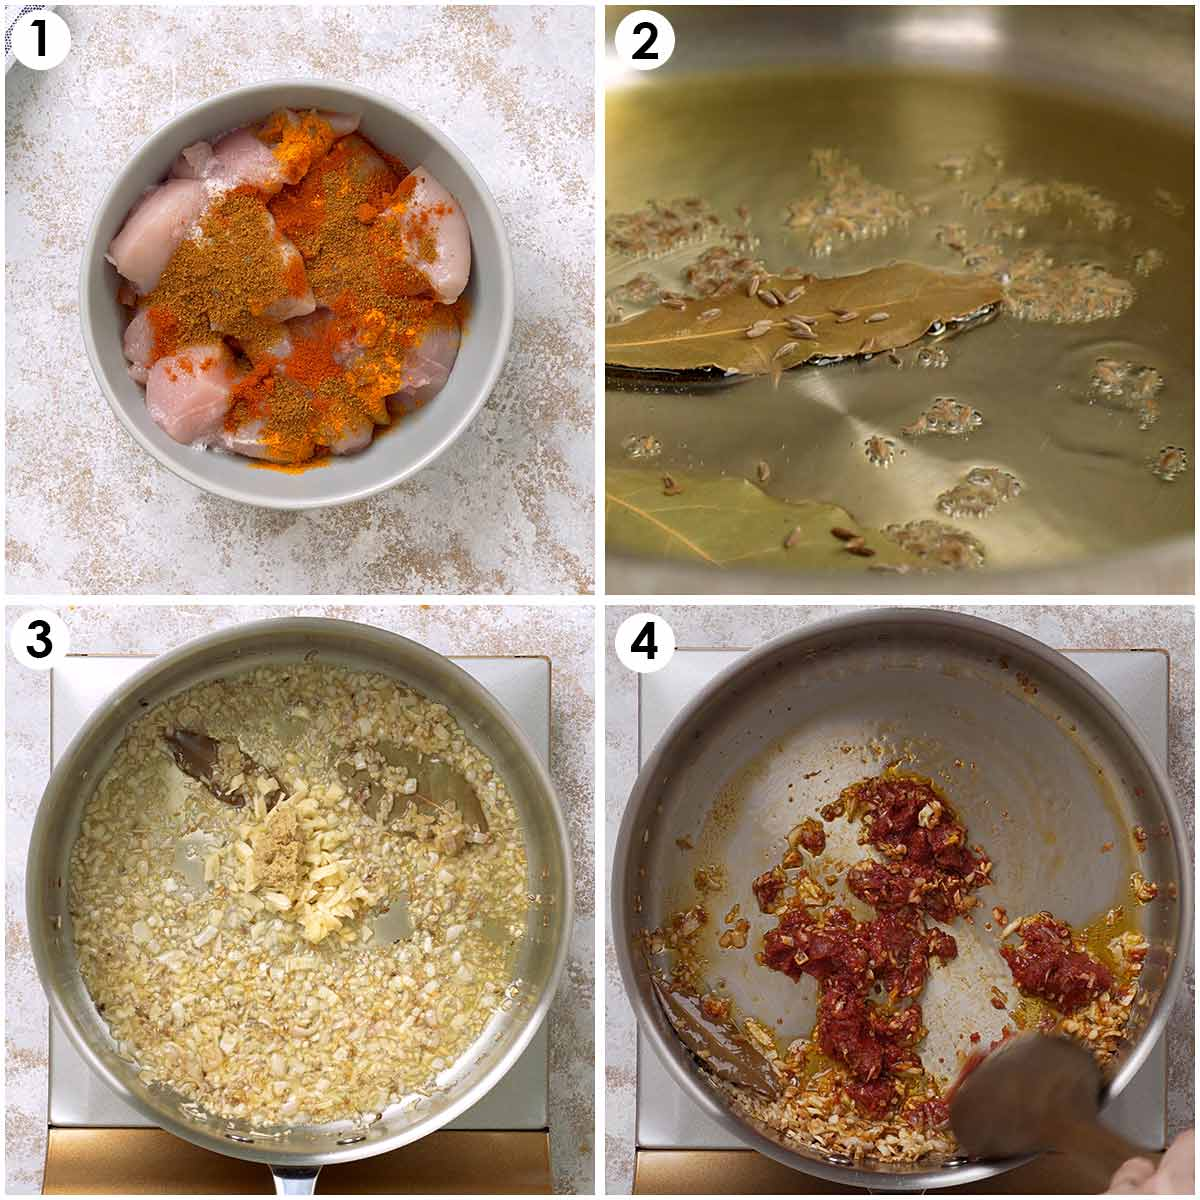 Four image collage showing how to marinade chicken and make curry sauce.